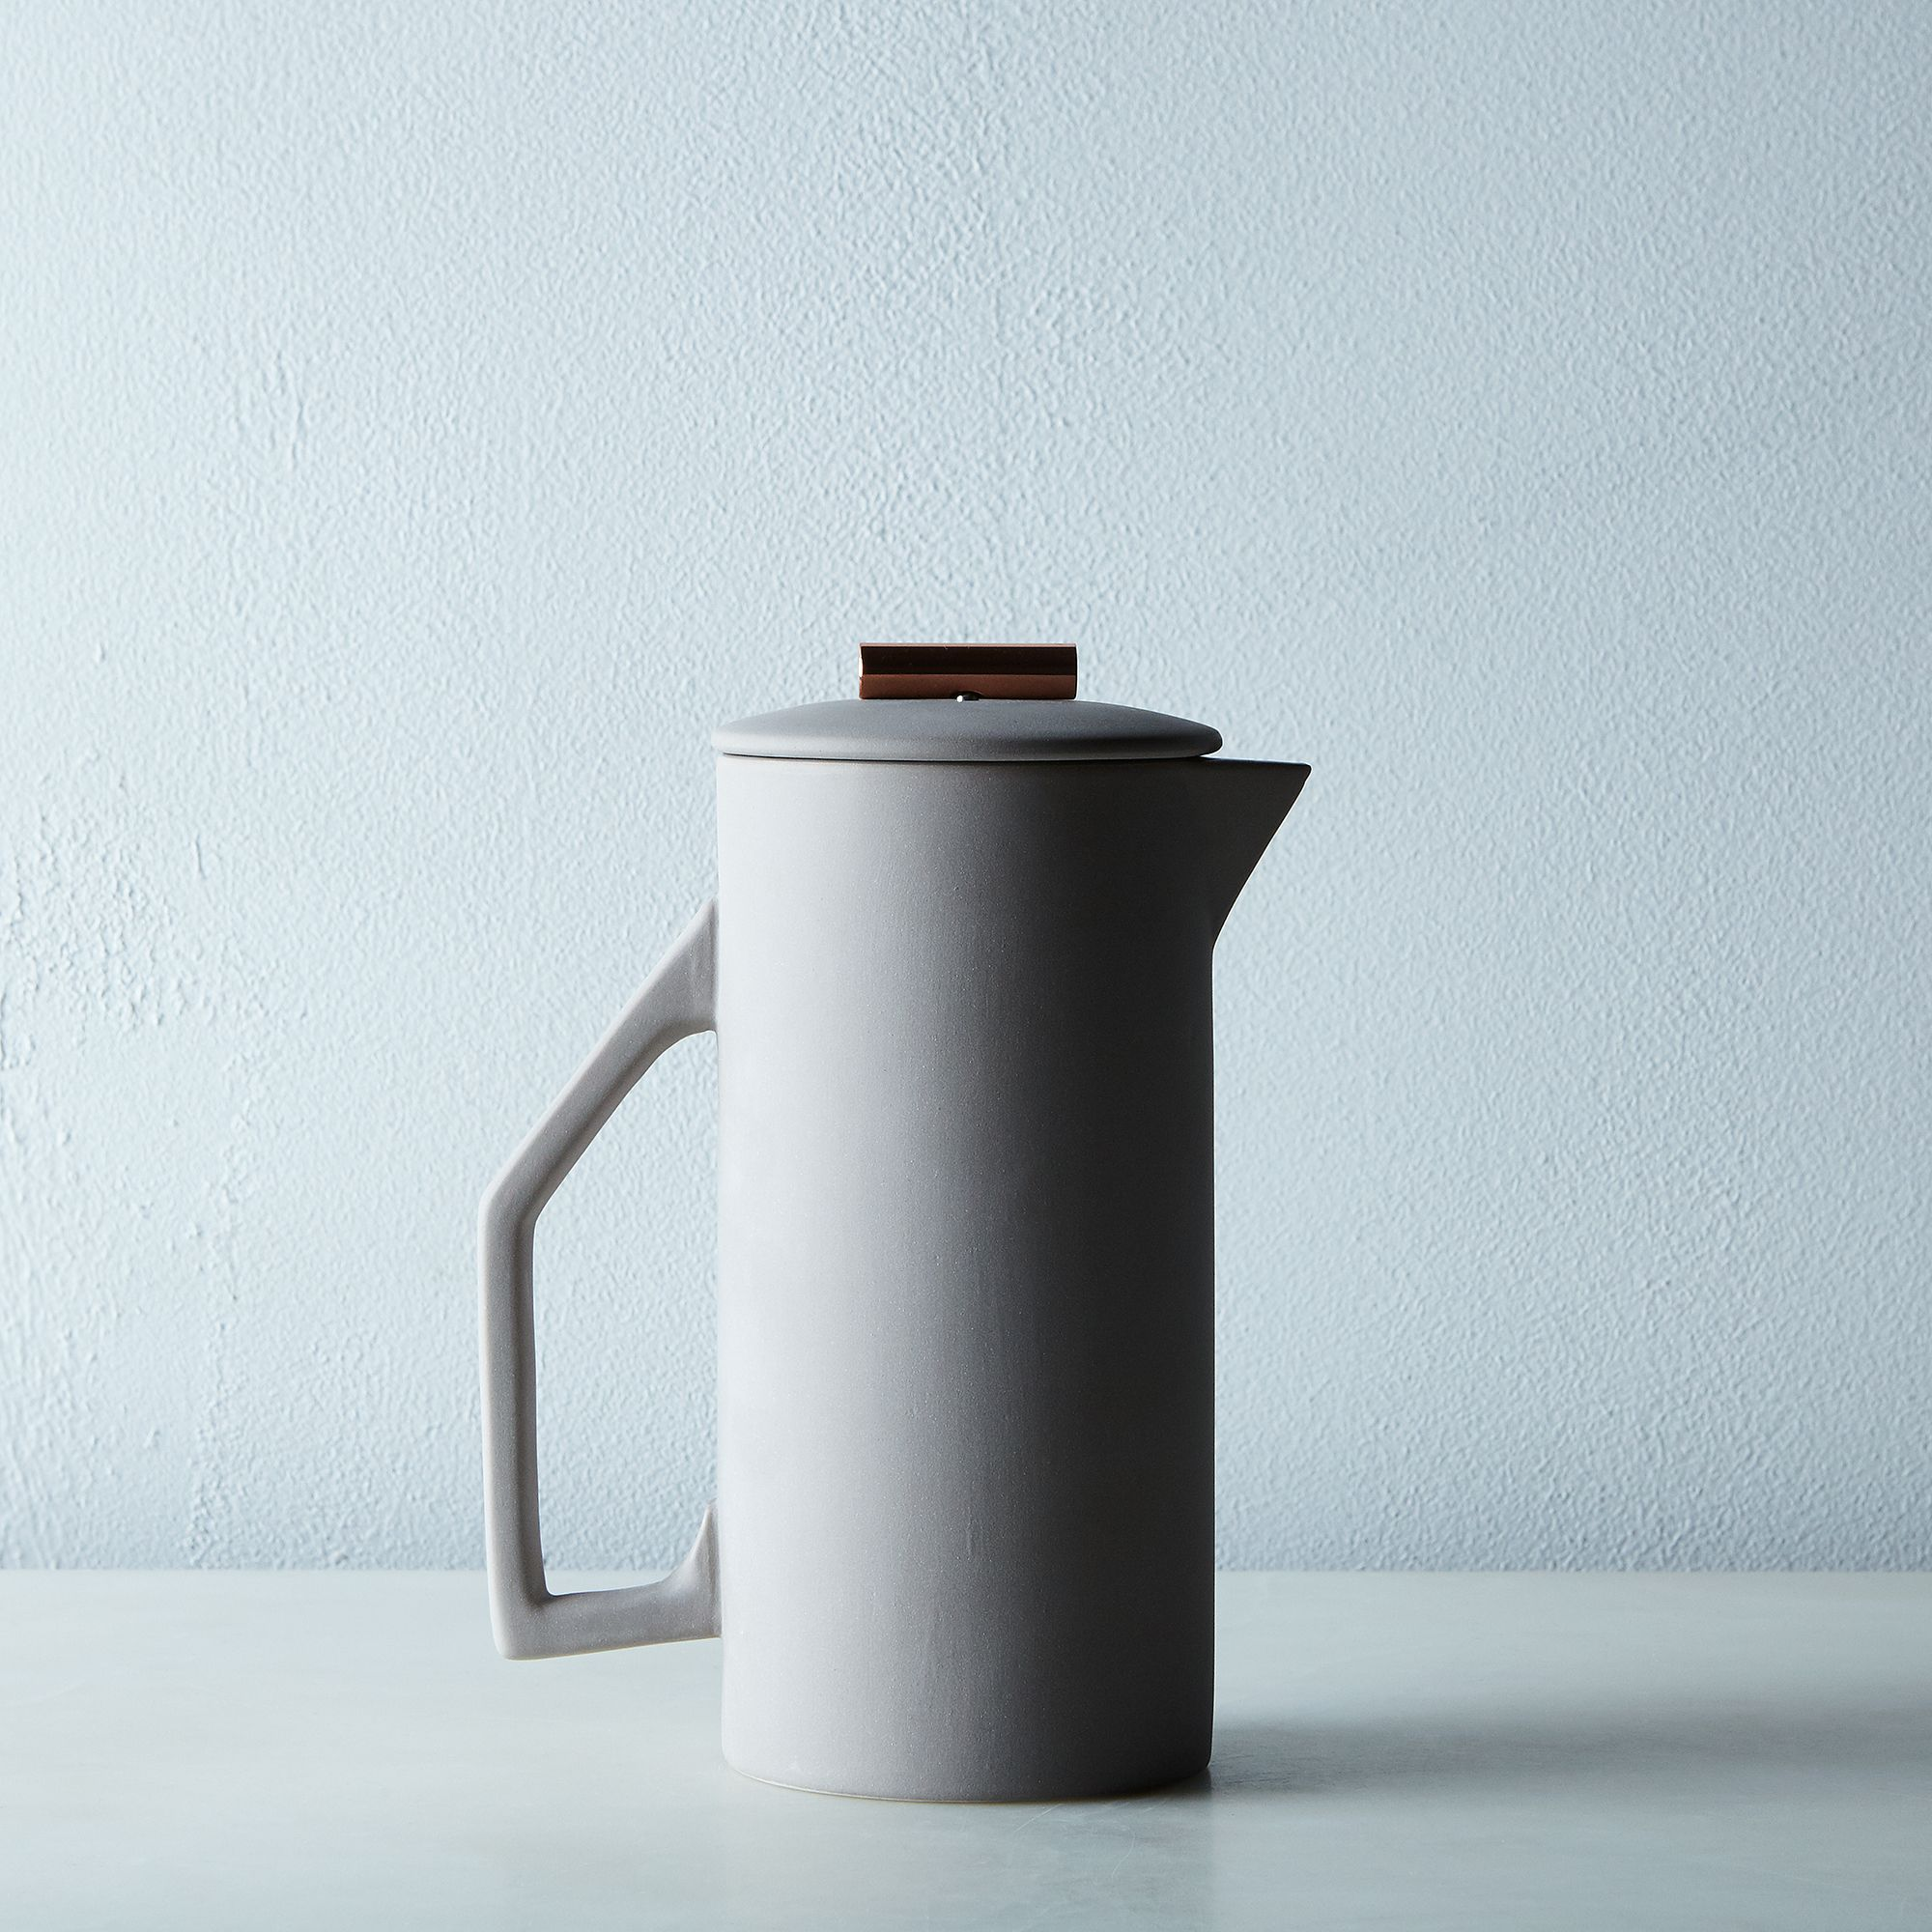 0e336dda 646a 4675 8daf e22c5d2544b4  2016 0223 yield design french press grey 28oz silo rocky luten 001